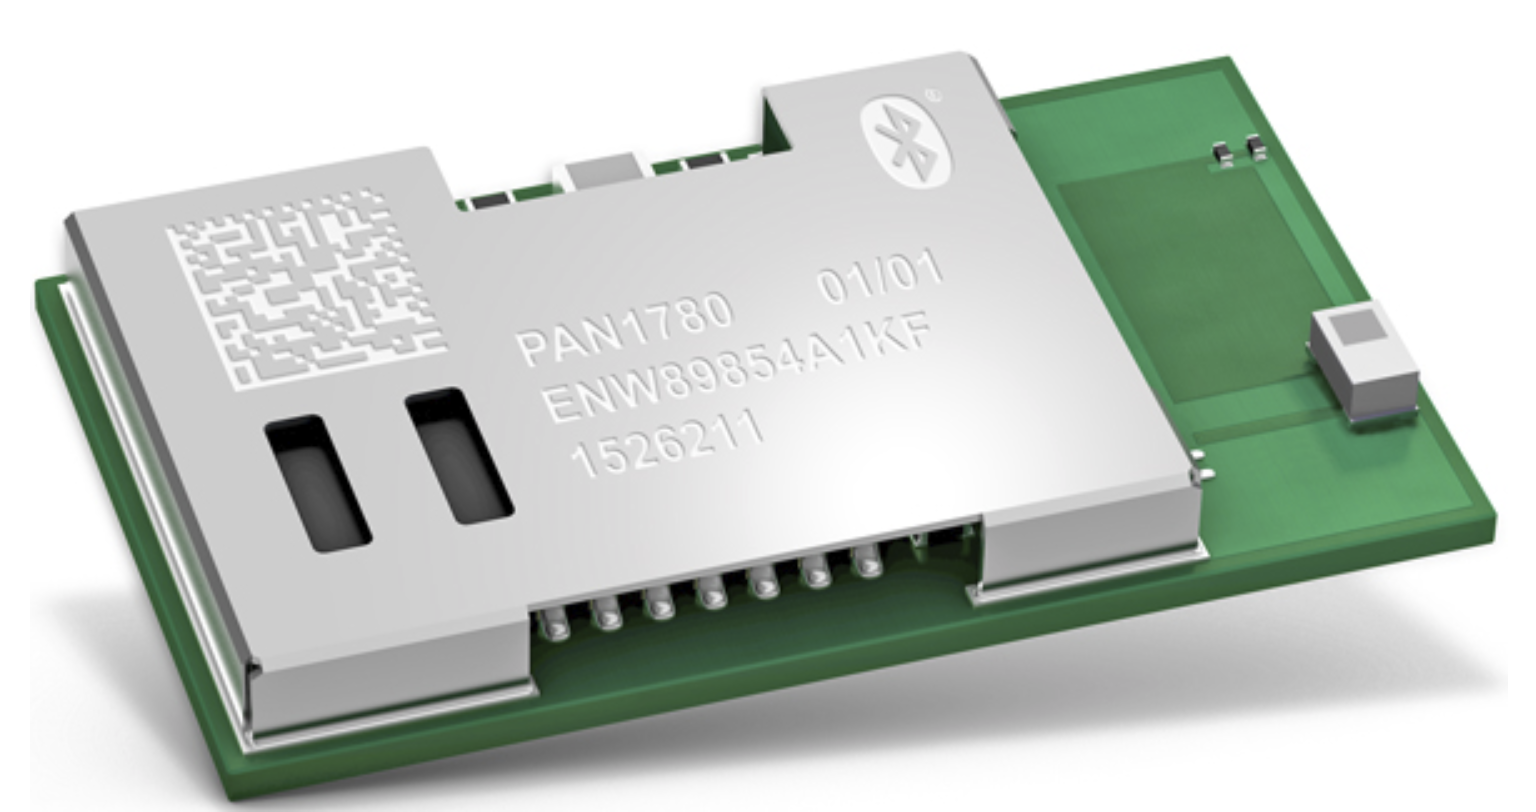 Panasonic Bluetooth module suits long-range IoT use.